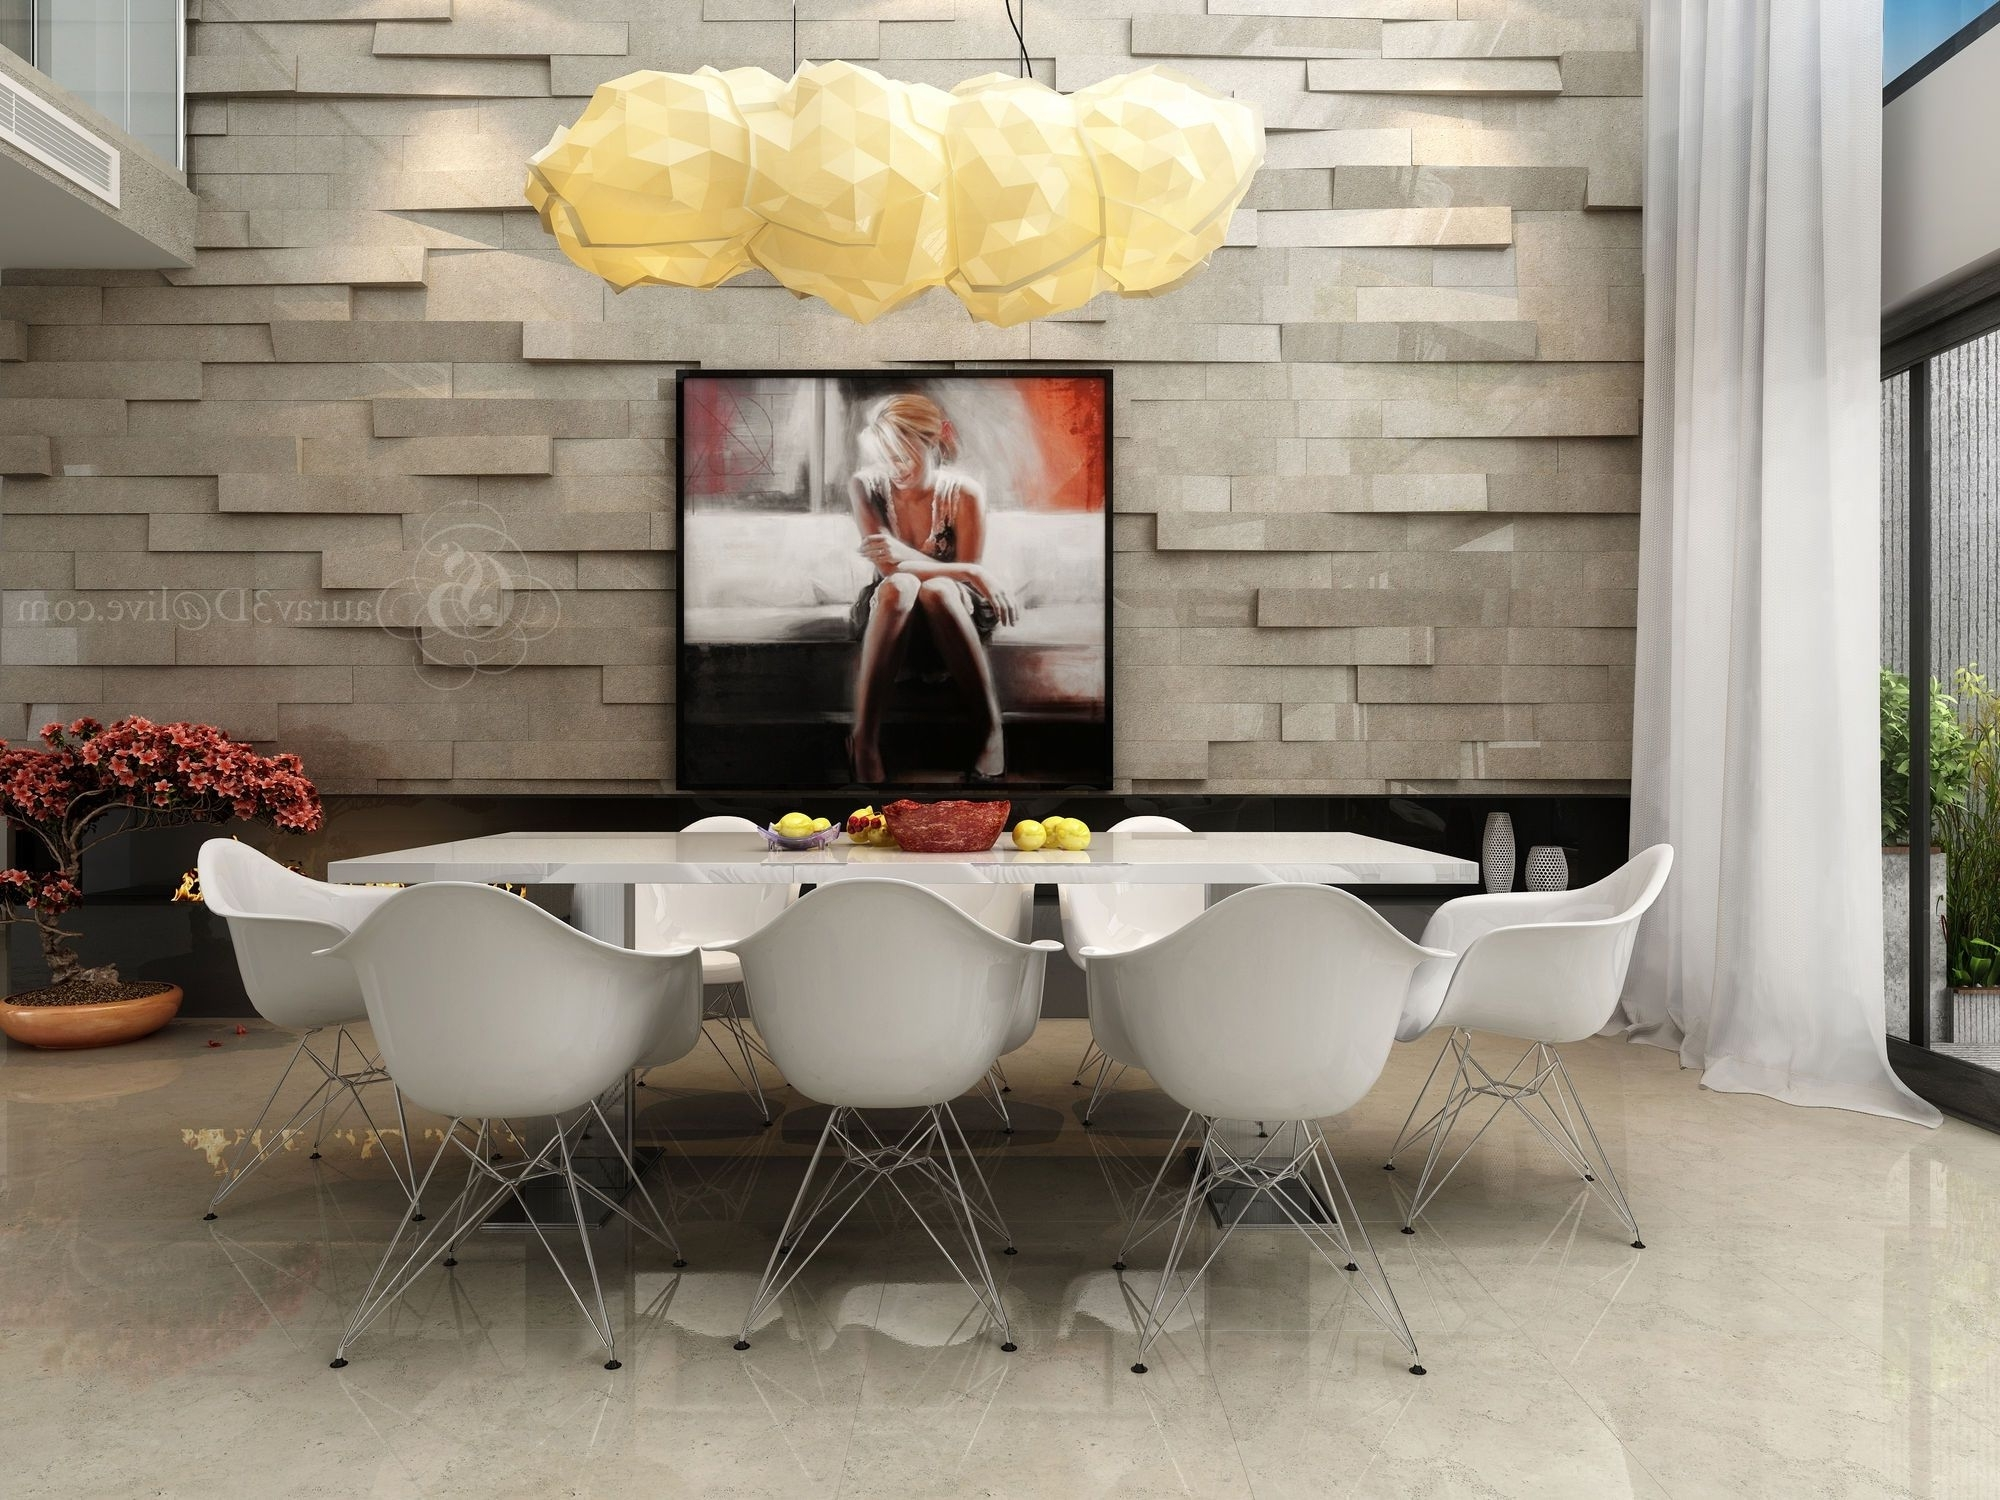 The Splendid Modern White Dining Suite Has Extruded Feature Walls Regarding Well Liked White Dining Suites (View 19 of 25)